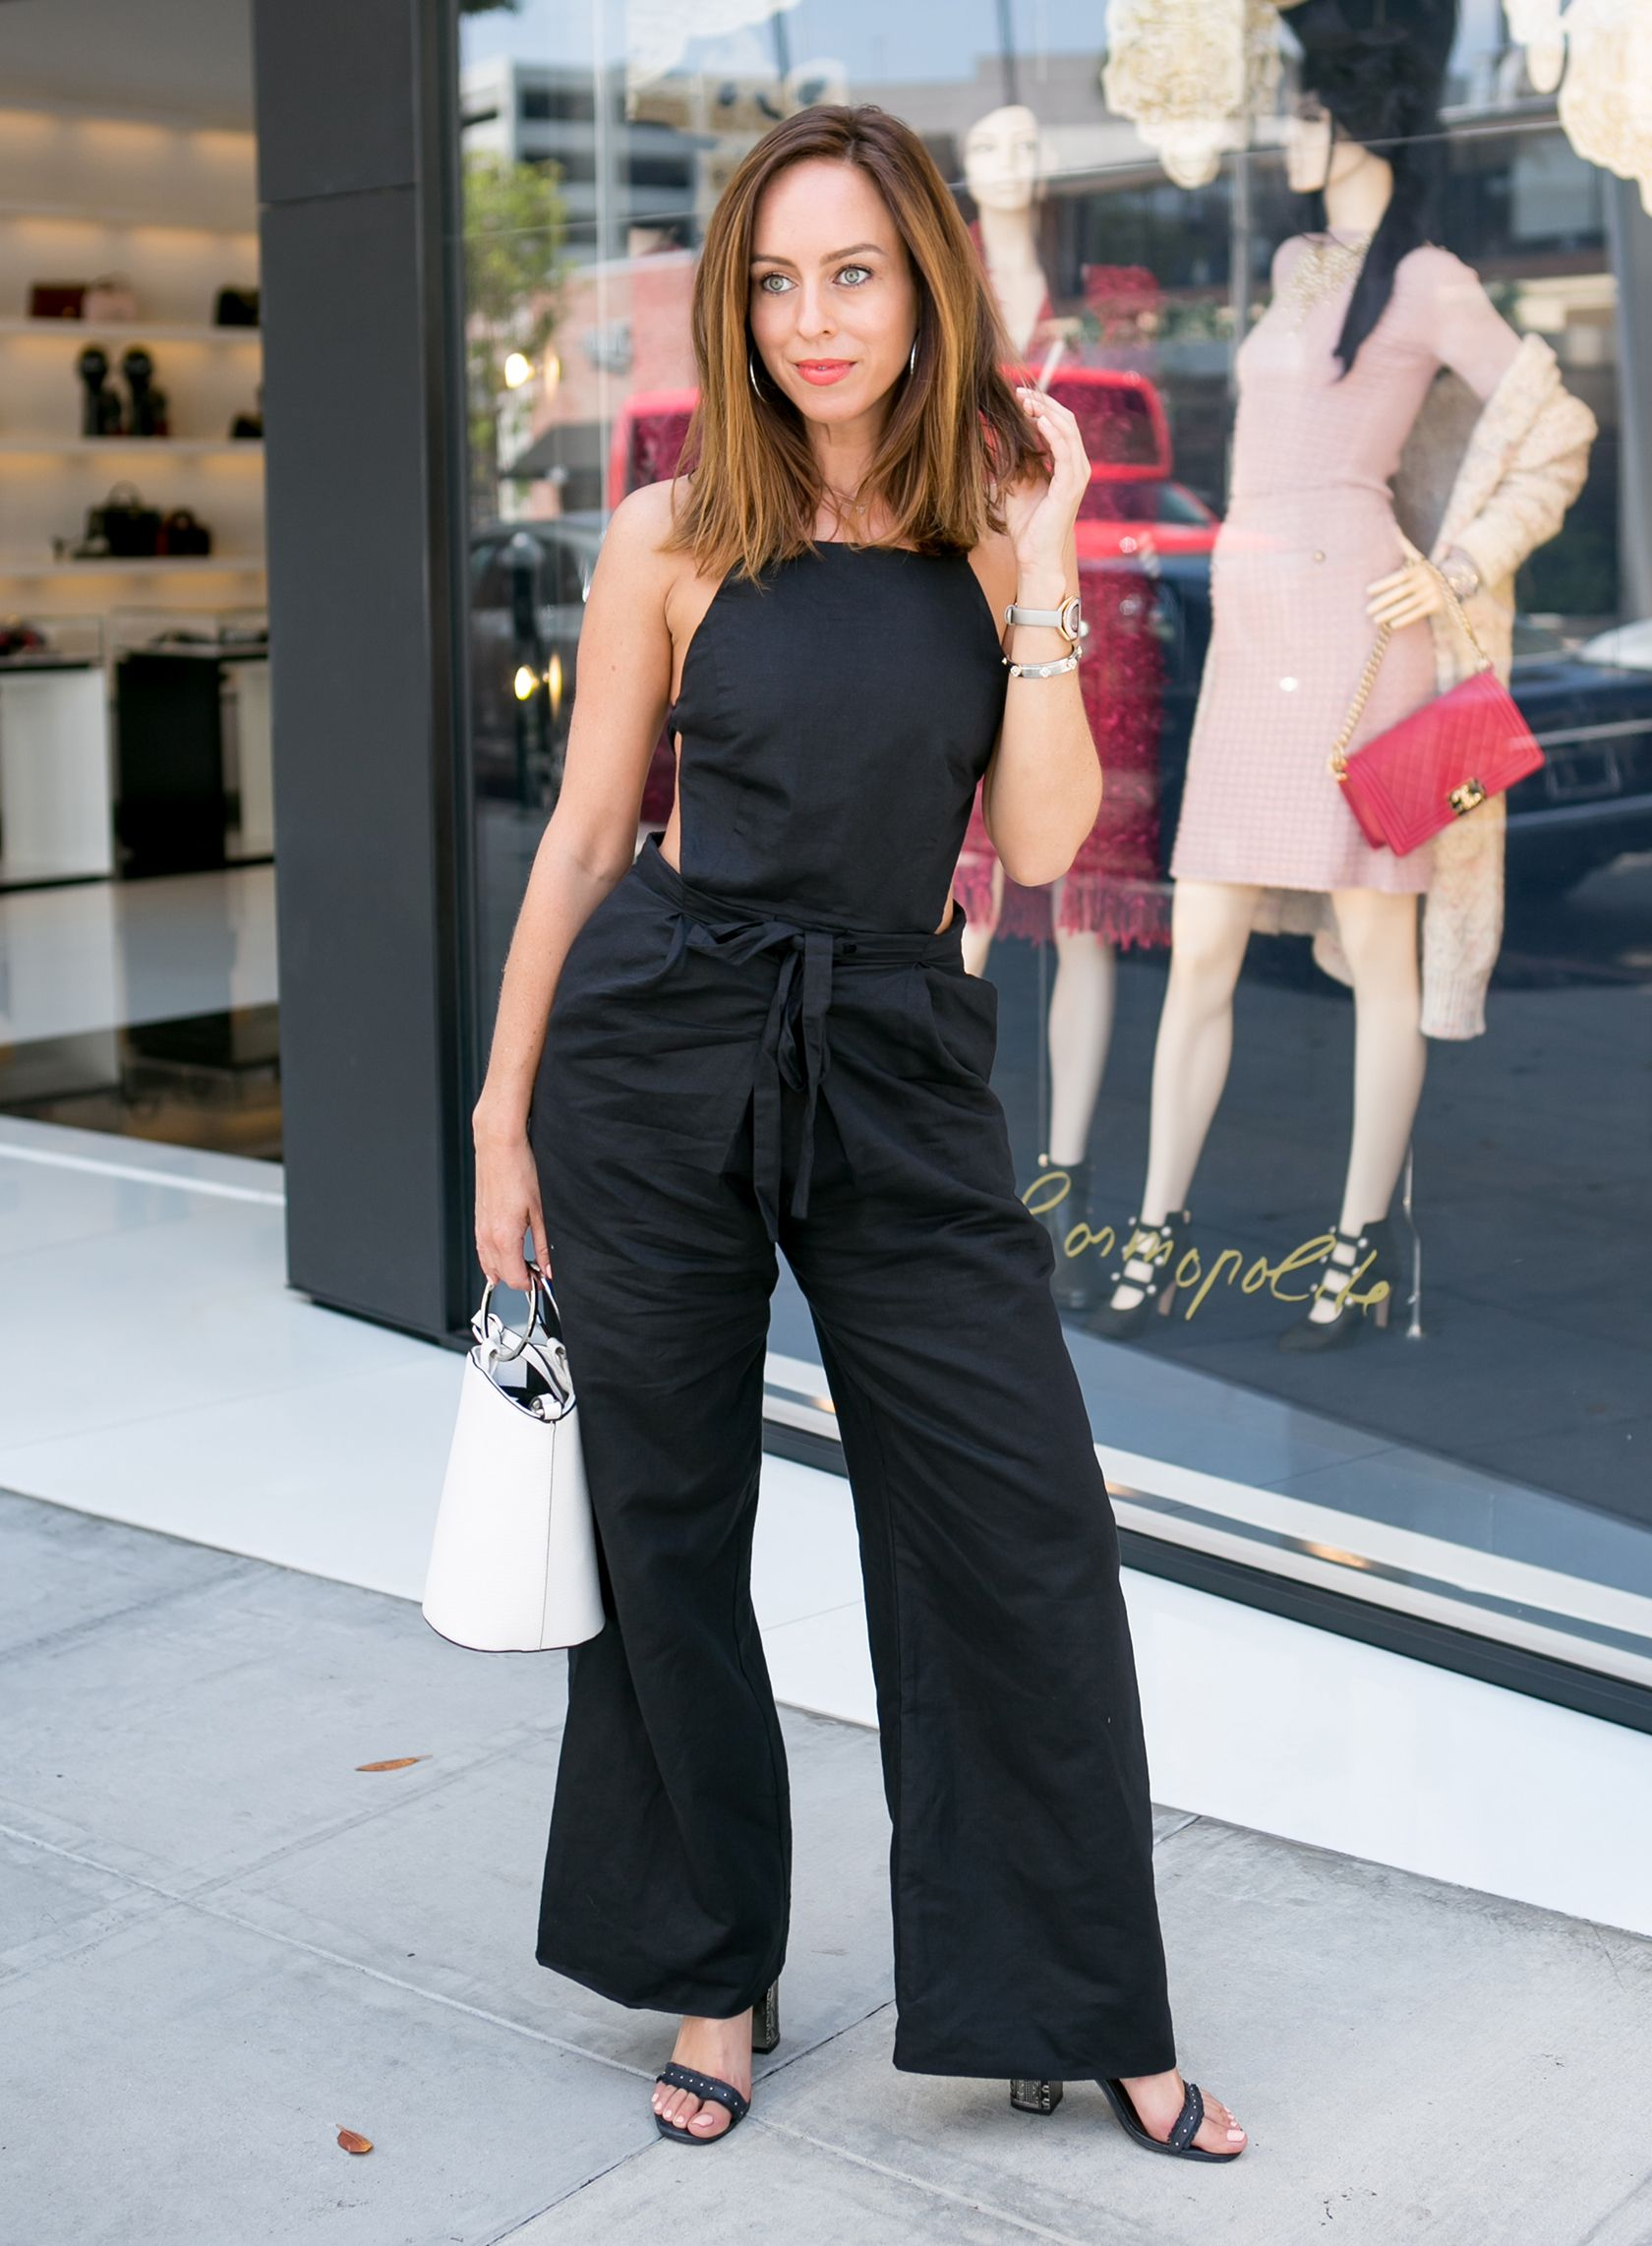 ea6ae04ee5b7 Sydne Style wears fame and partners black jumpsuit for summer date night  ideas